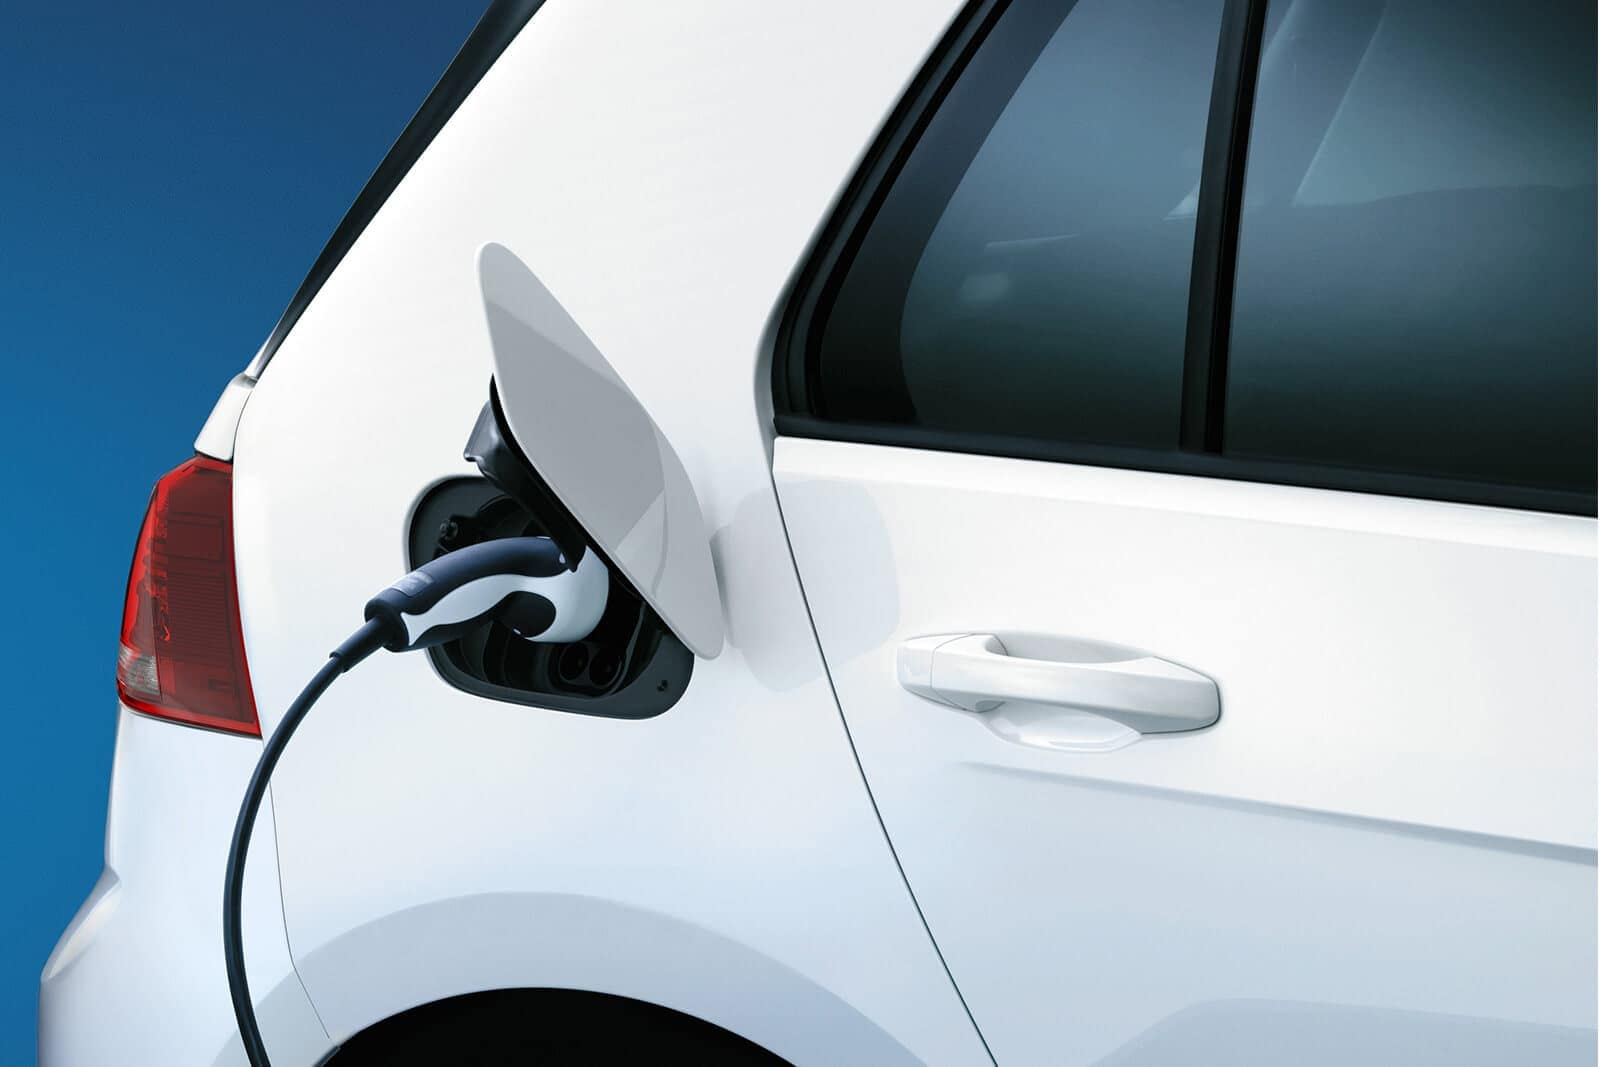 2019 Volkswagen eGolf in white plugged into charger